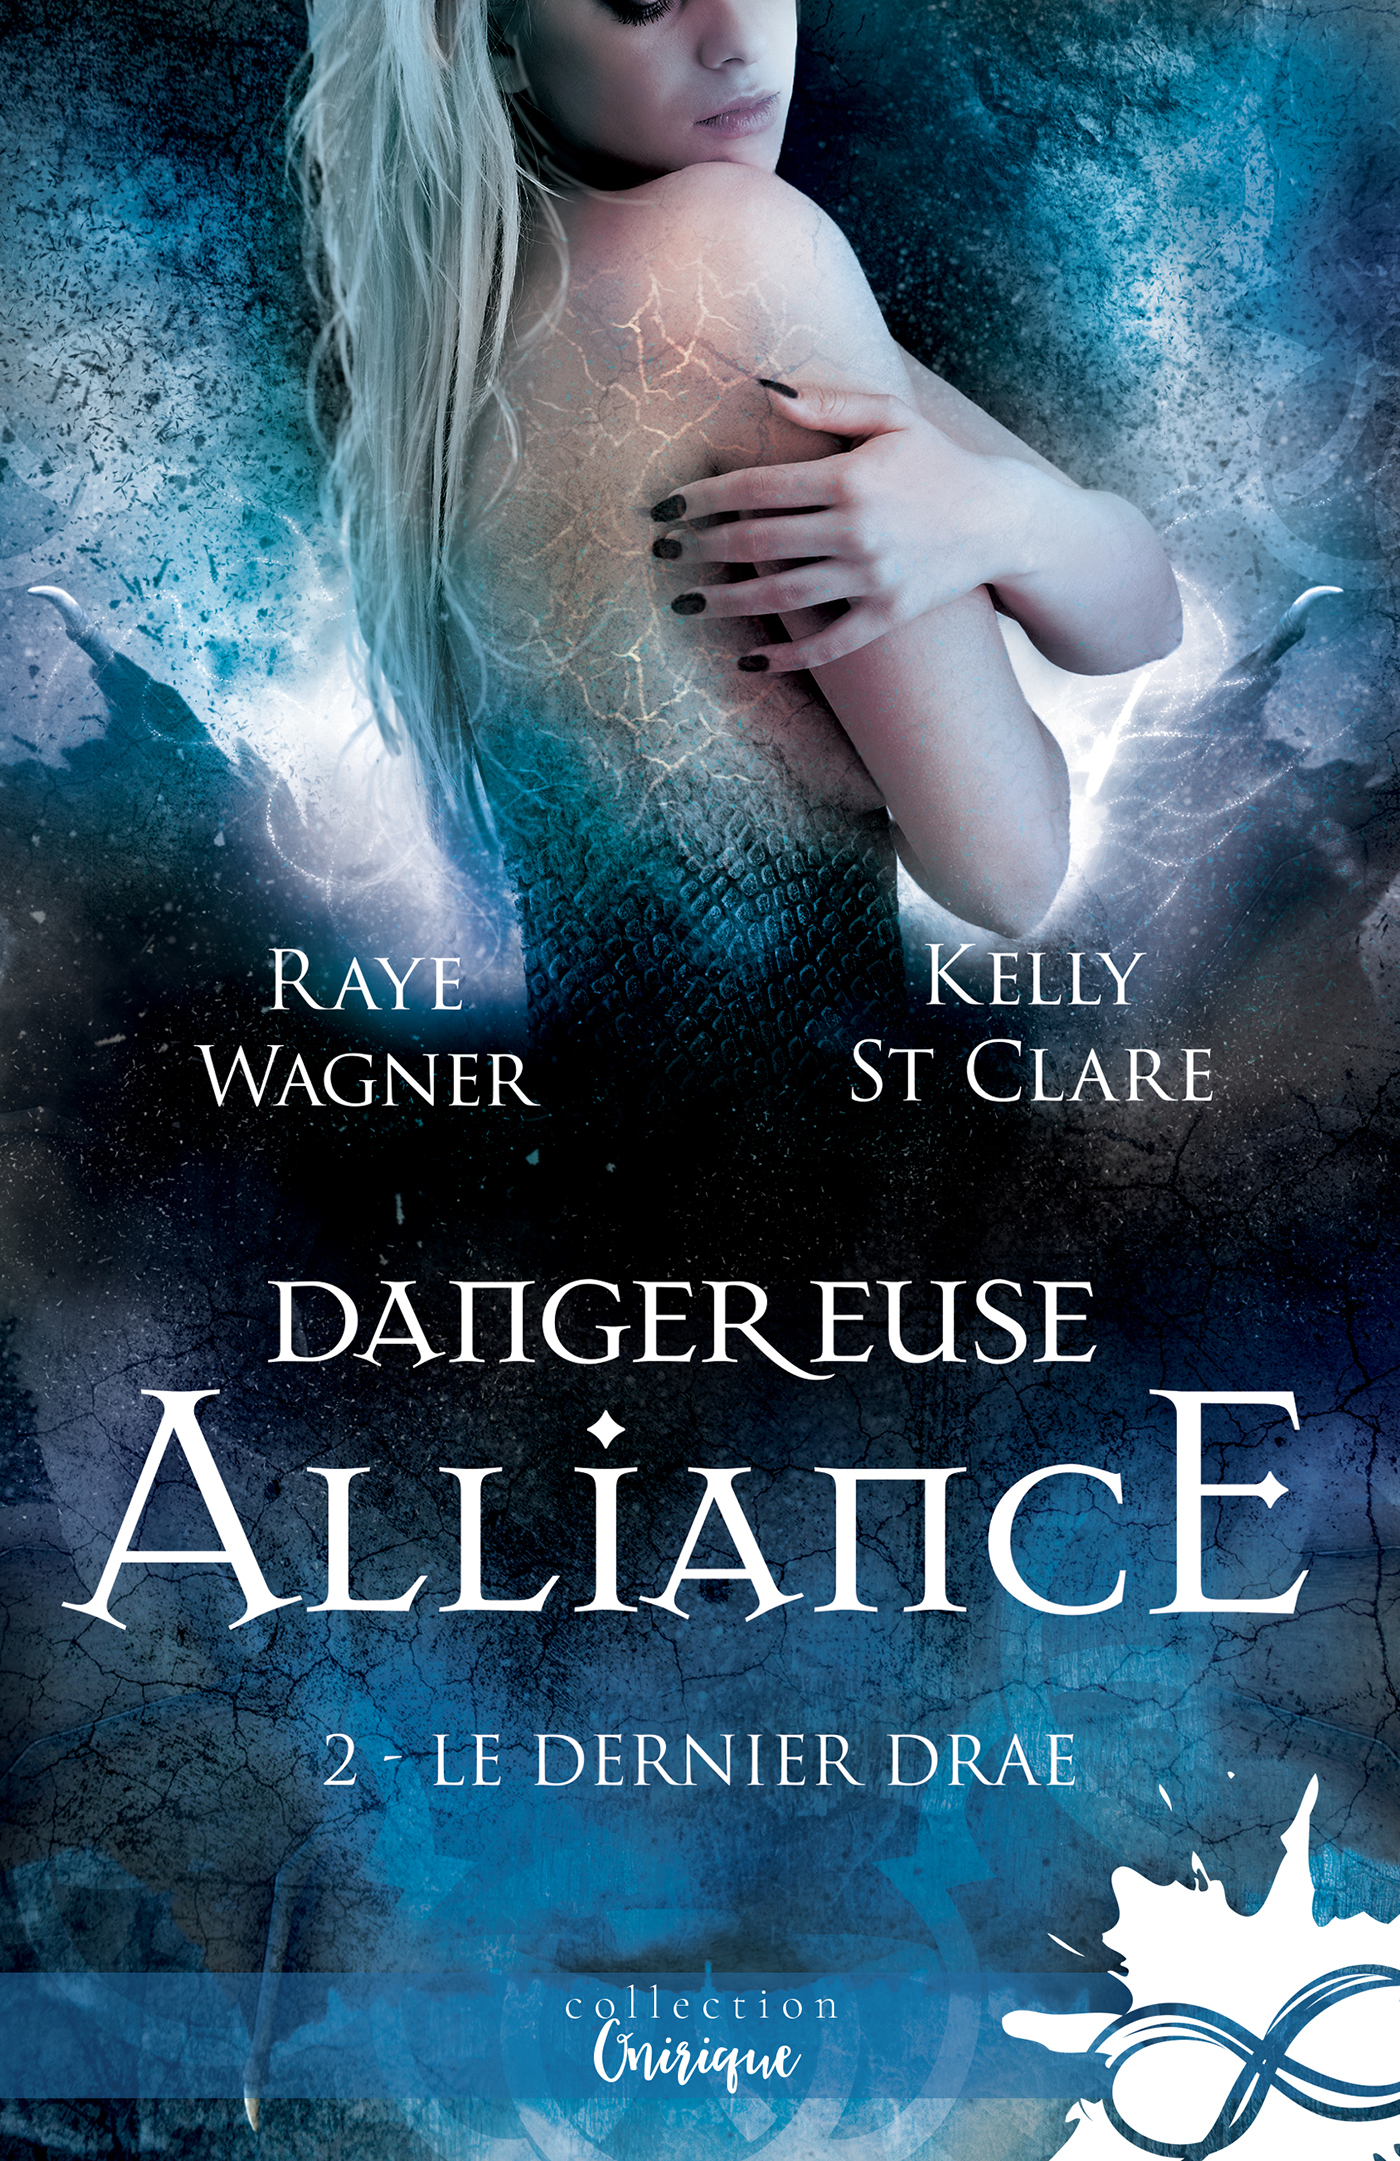 https://cdn1.booknode.com/book_cover/1291/full/le-dernier-drae-tome-2-dangereuse-alliance-1290629.jpg